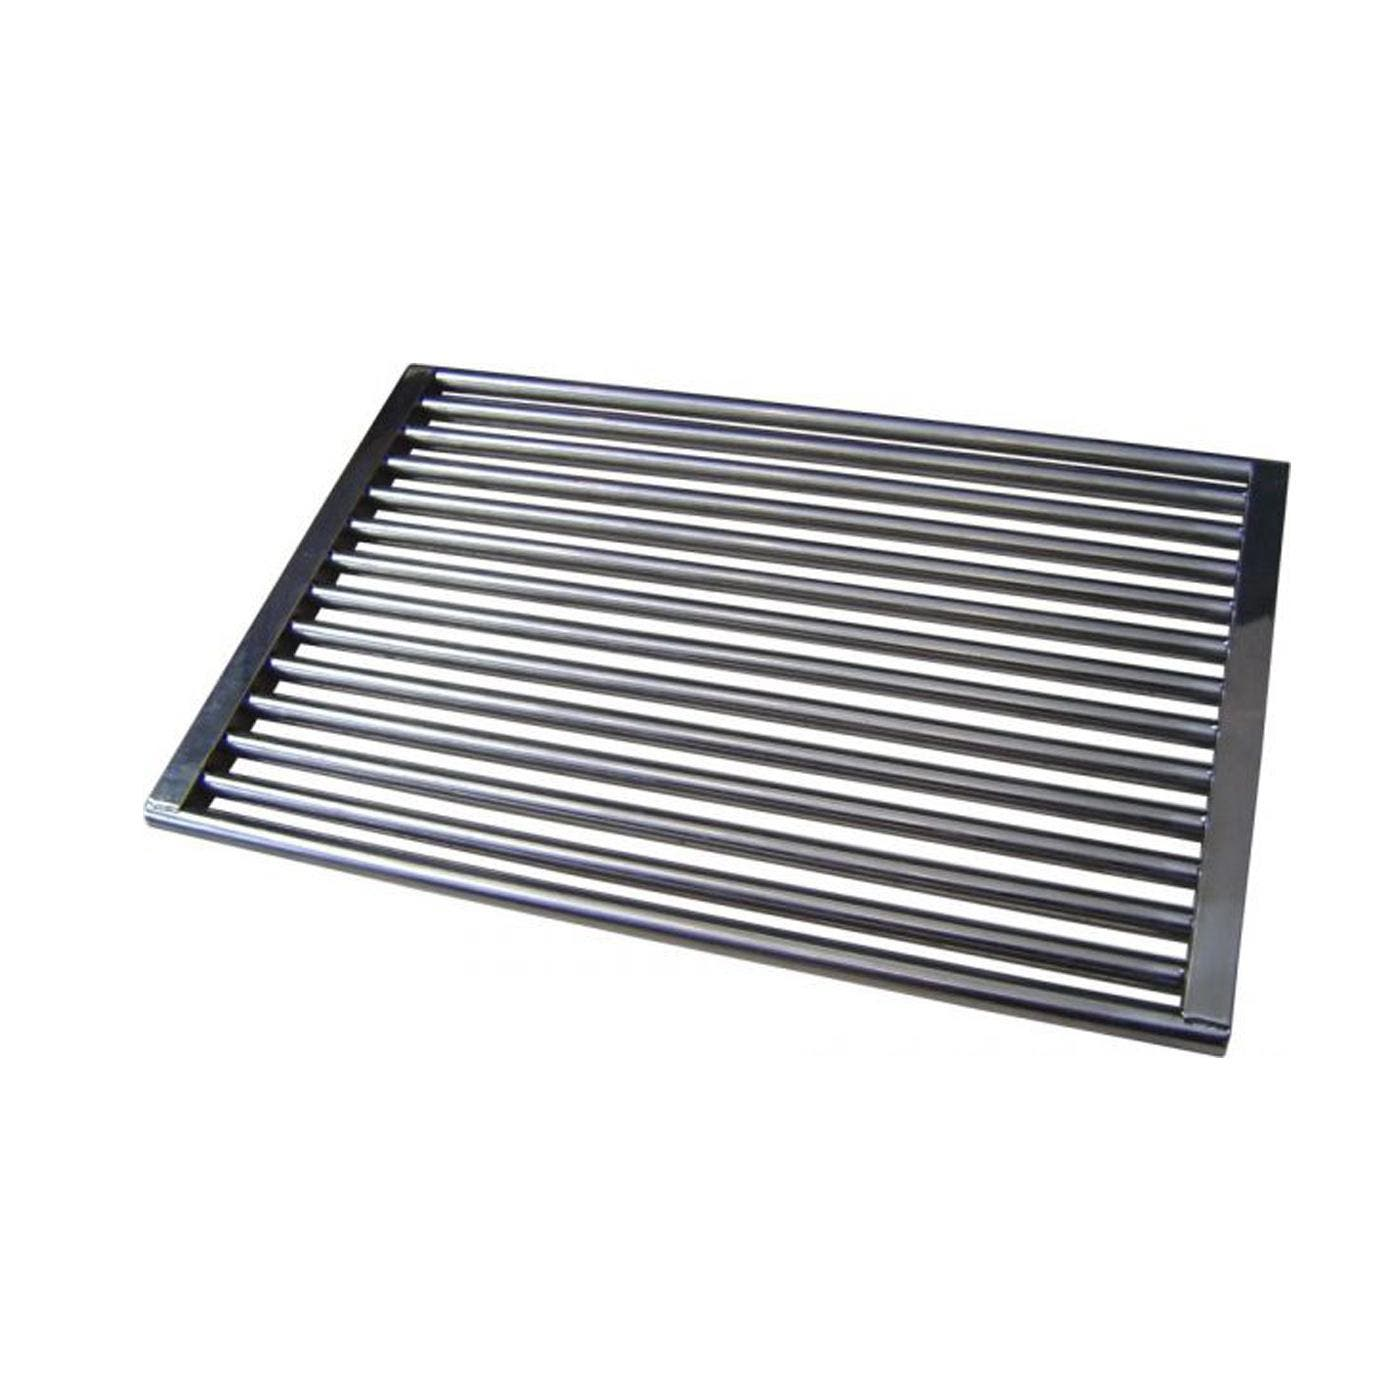 Sunco 320mm x 485mm Stainless Steel Grill 320mm x 485mm Stainless Steel Grill (Electro polished) Standard after market replacement to suit most 3 burner & 6 burner Beefeater or Sunco barbecues